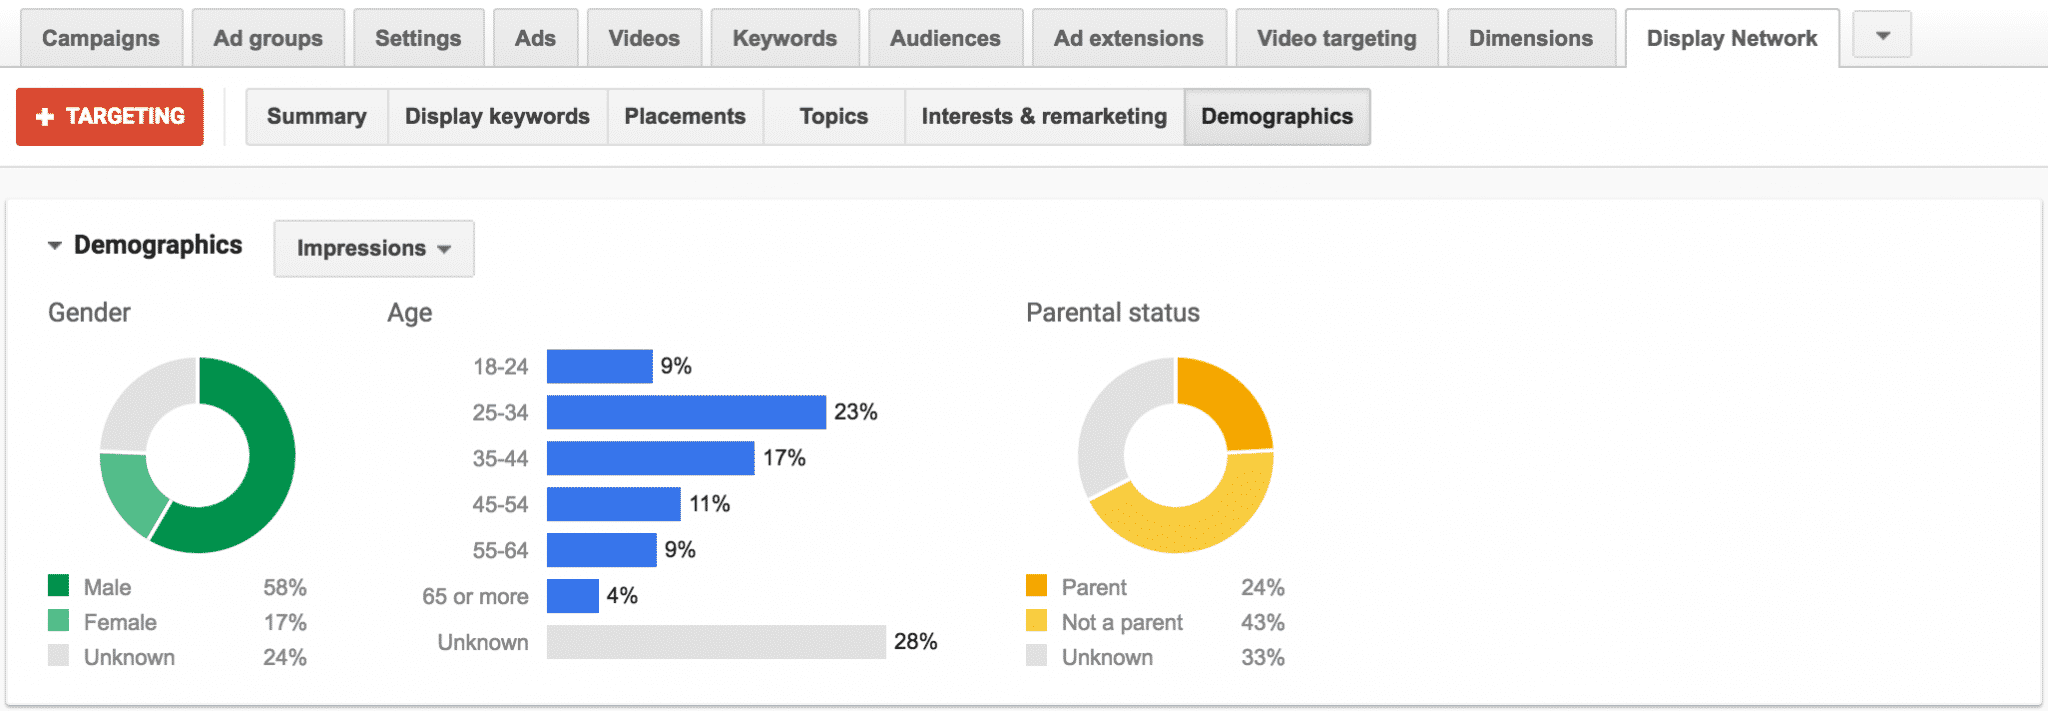 Viewing Demographic Data on the Display Network   Disruptive Advertising